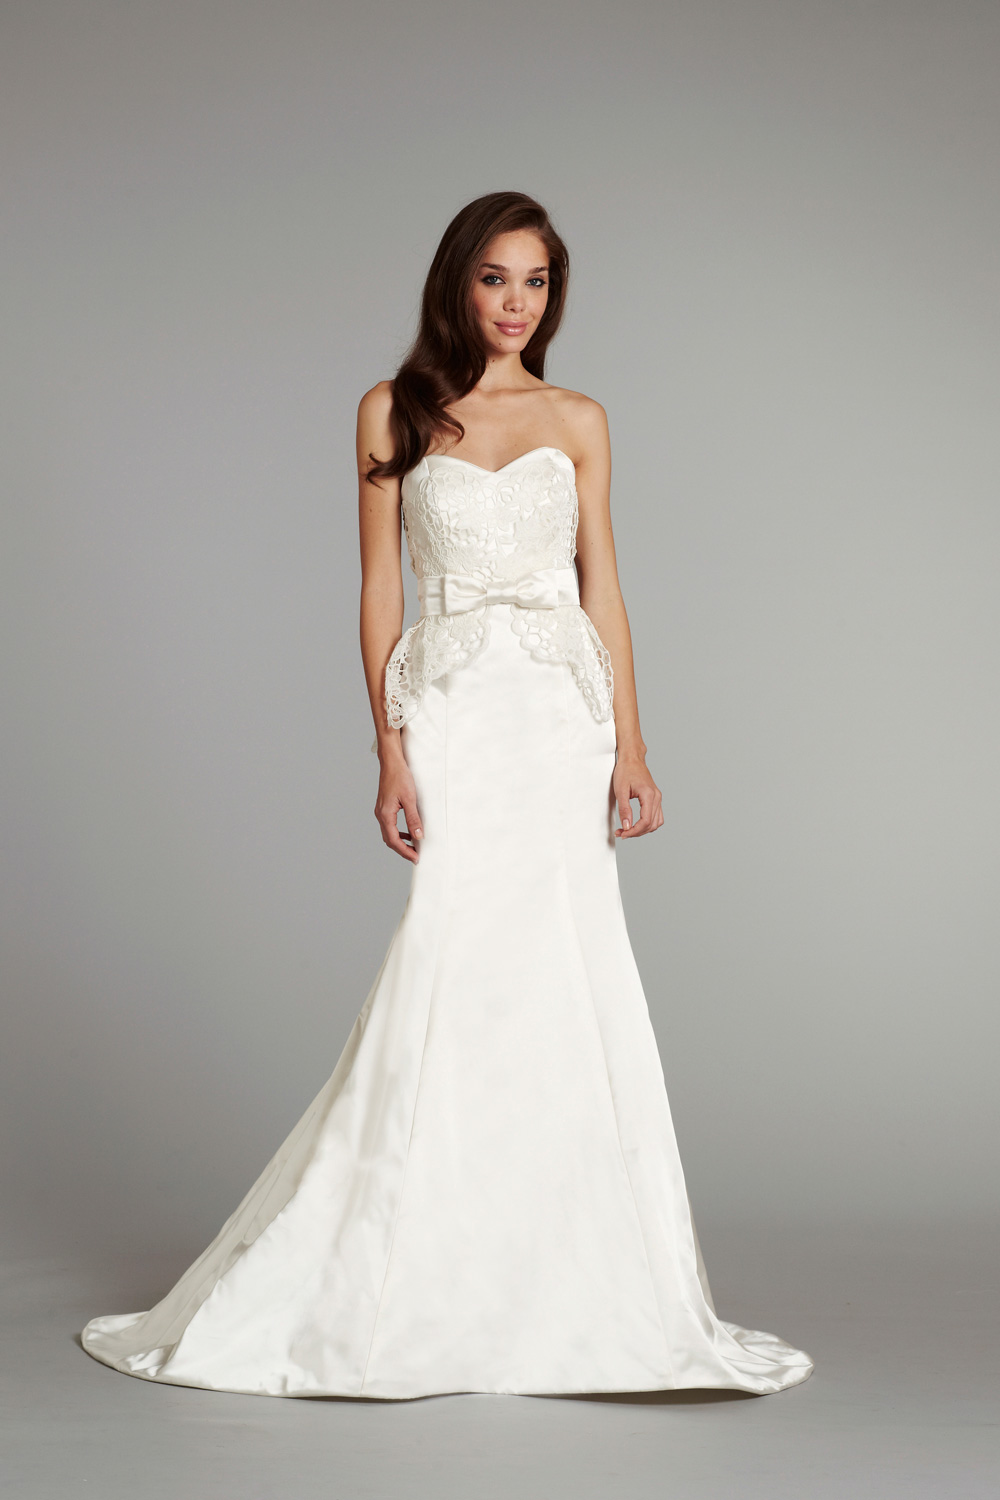 New-bridal-gowns-fall-2012-wedding-dress-hayley-paige-for-jlm-couture-sloane.original